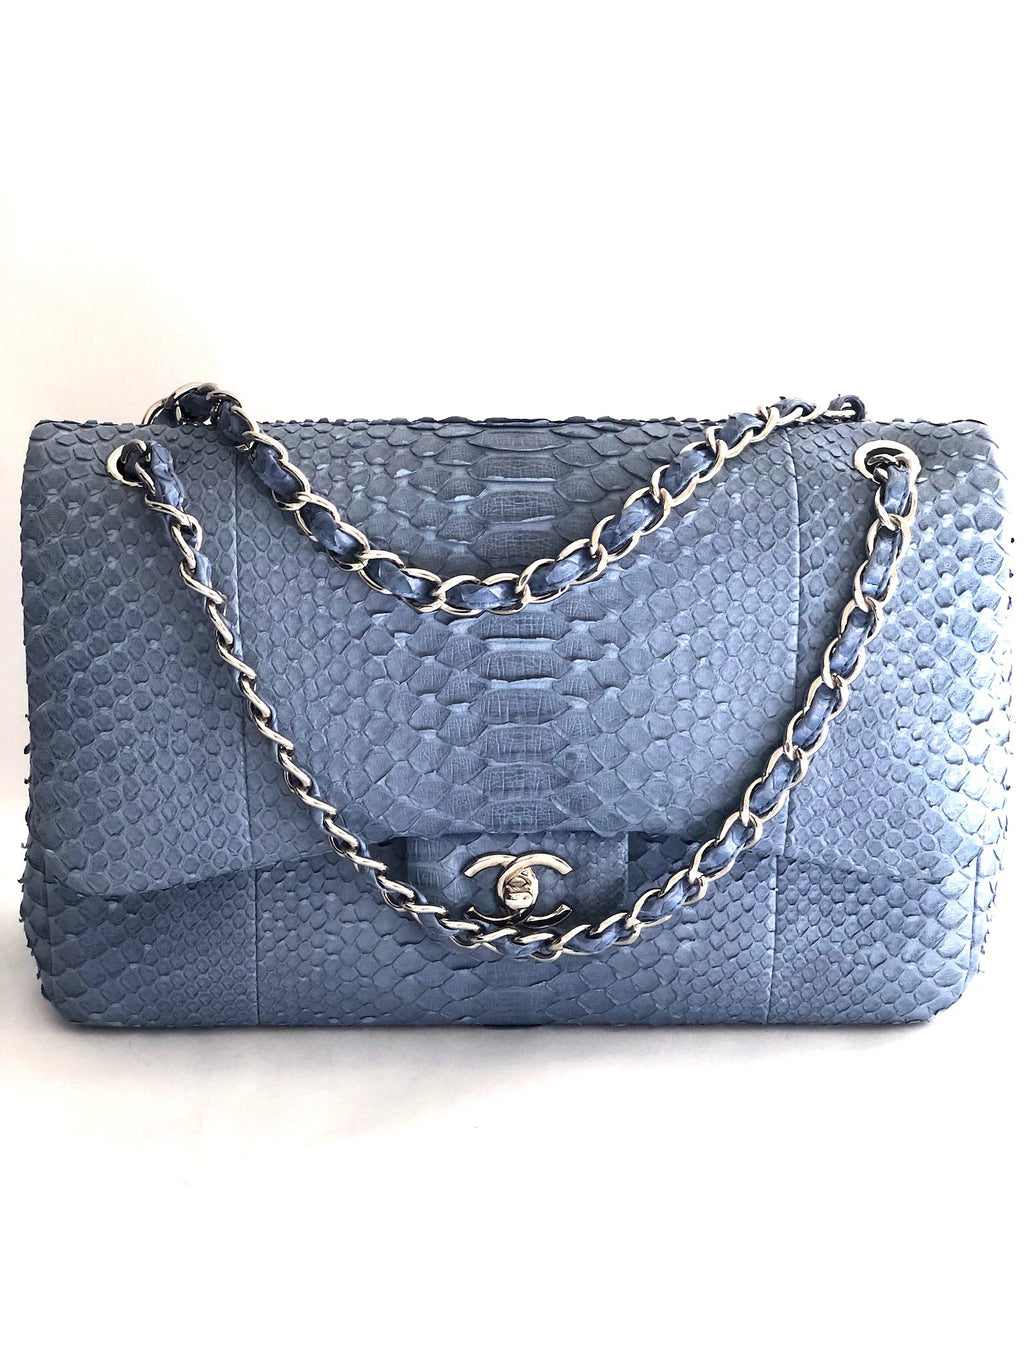 Chanel Classic Jumbo Double Flap Python Shoulder Bag